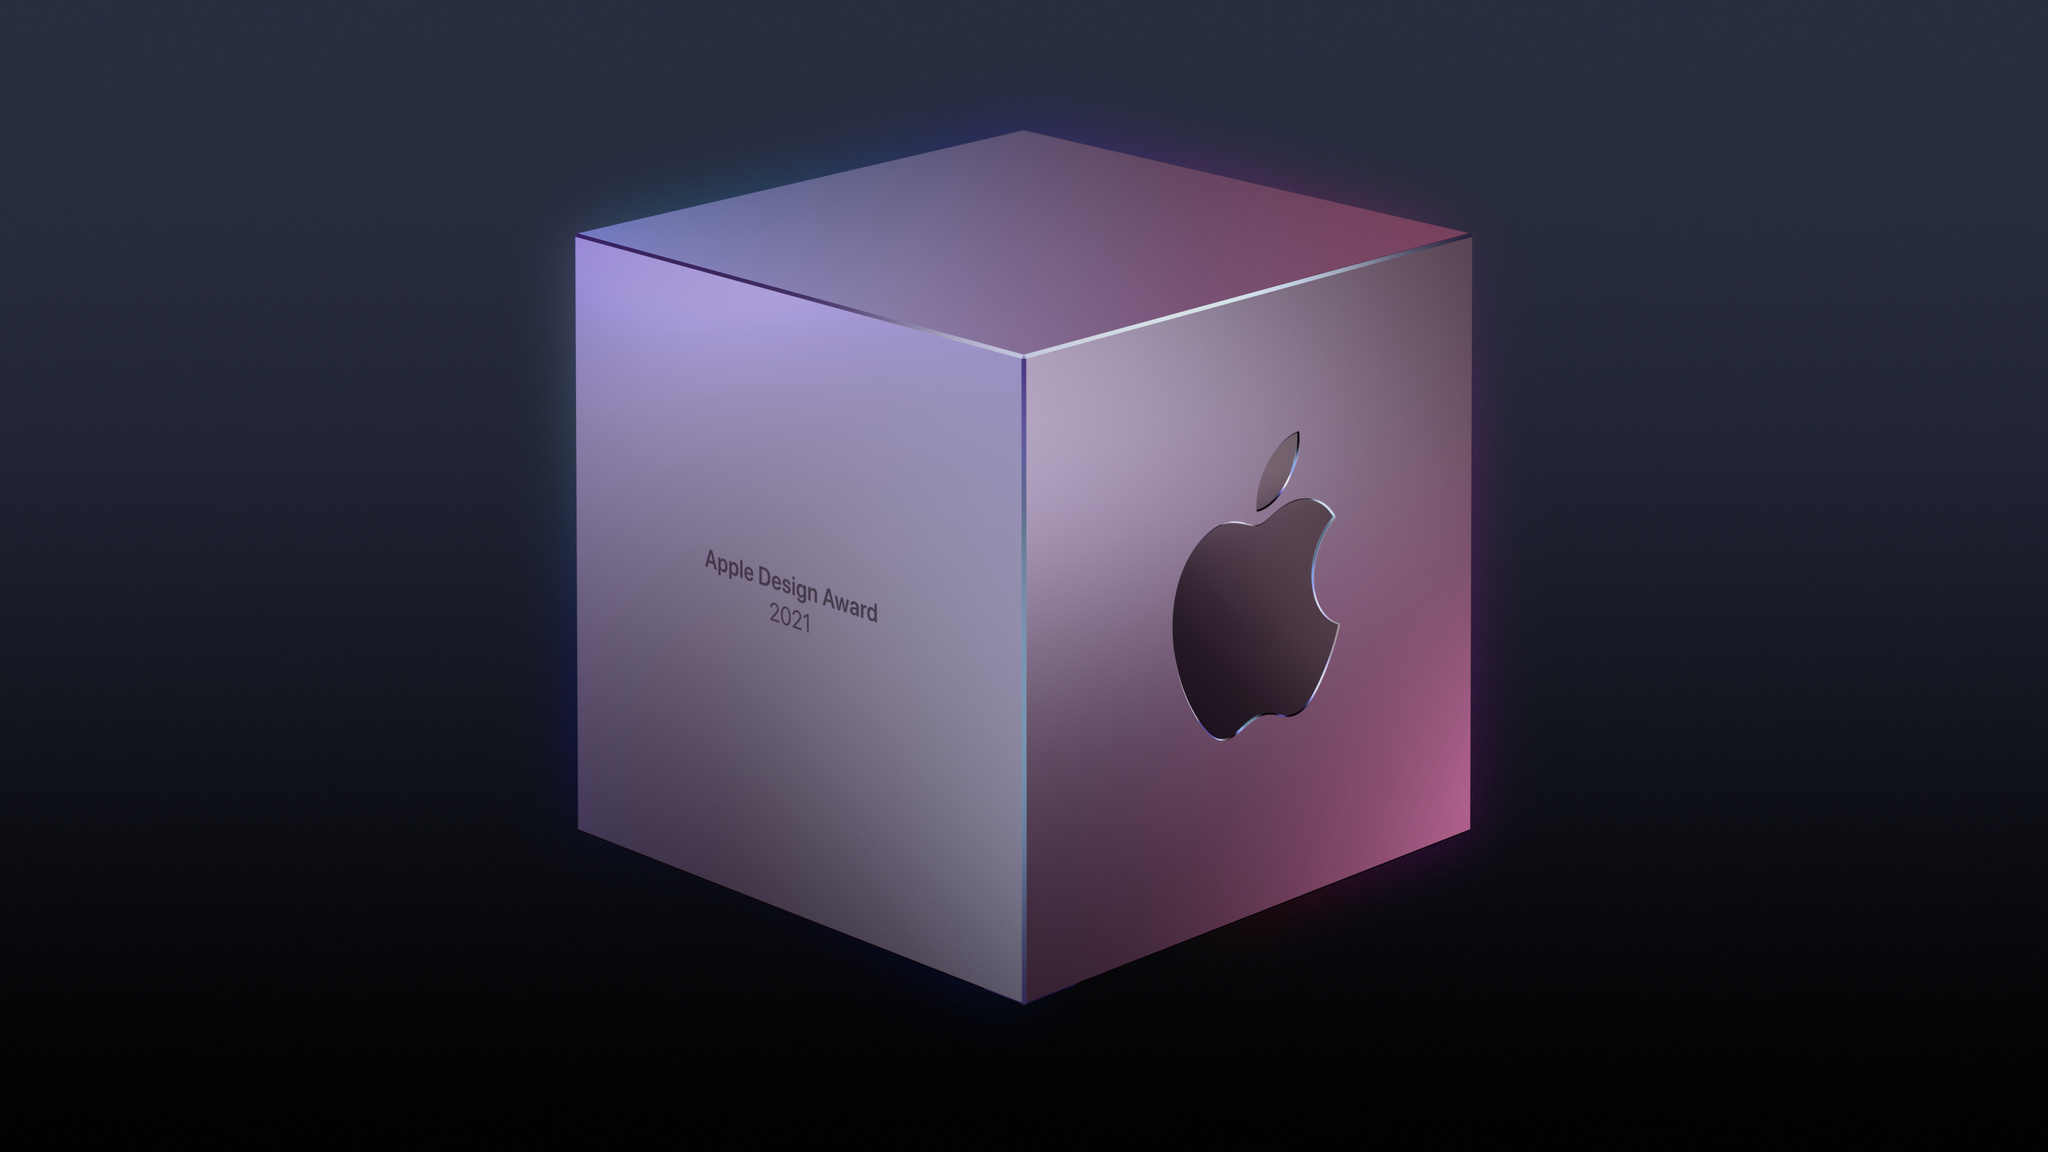 A stylized rendering of an Apple Design Award.